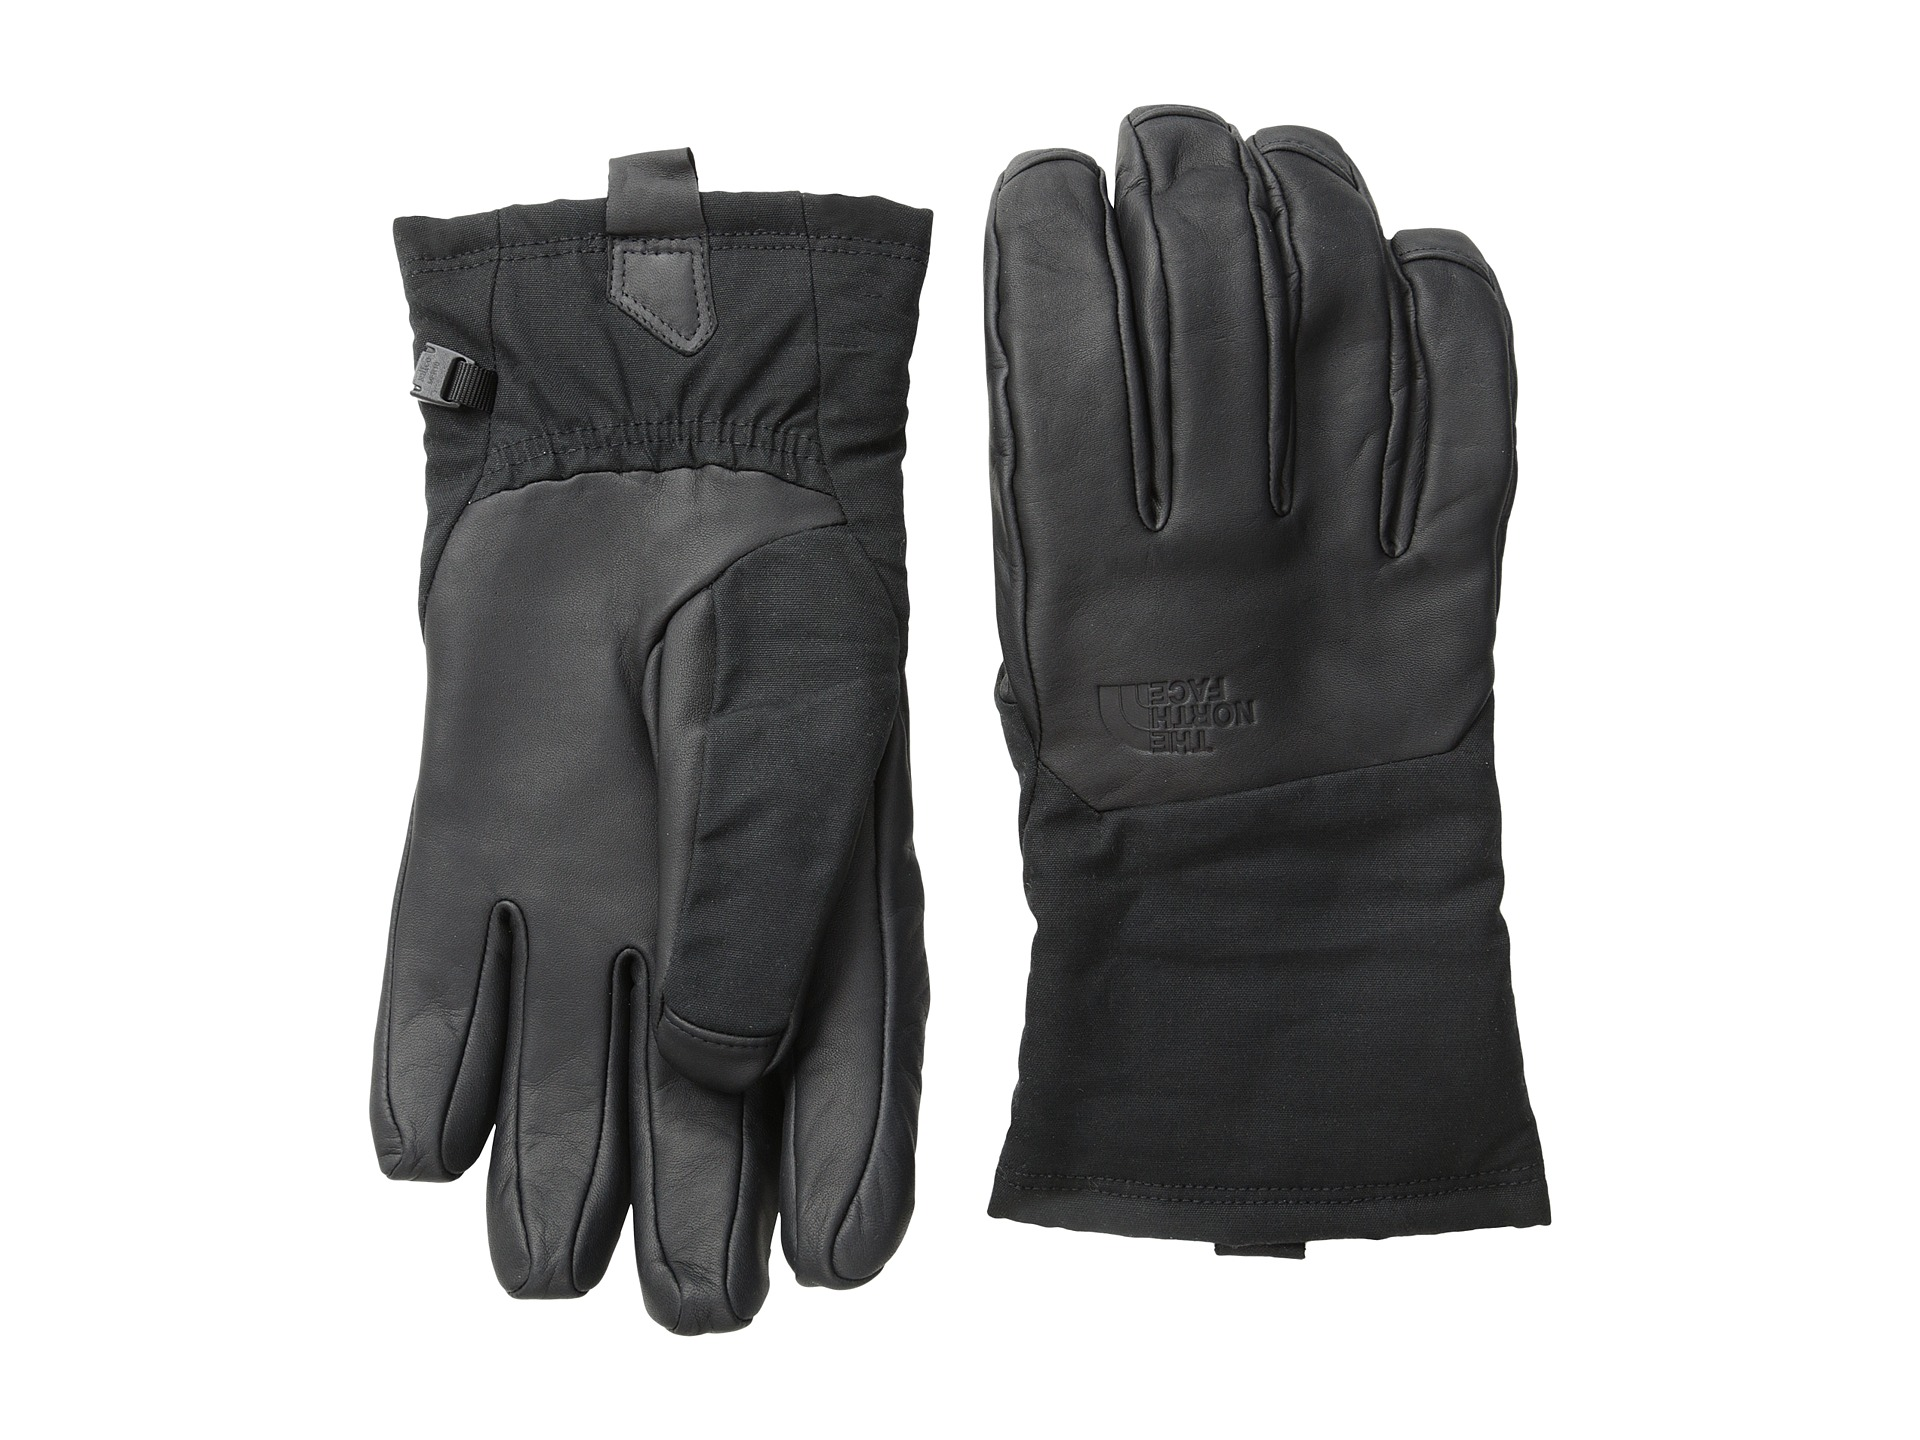 Mens leather gloves size 2x - The North Face Men S Denali Se Leather Glove Zappos Com Free Shipping Both Ways